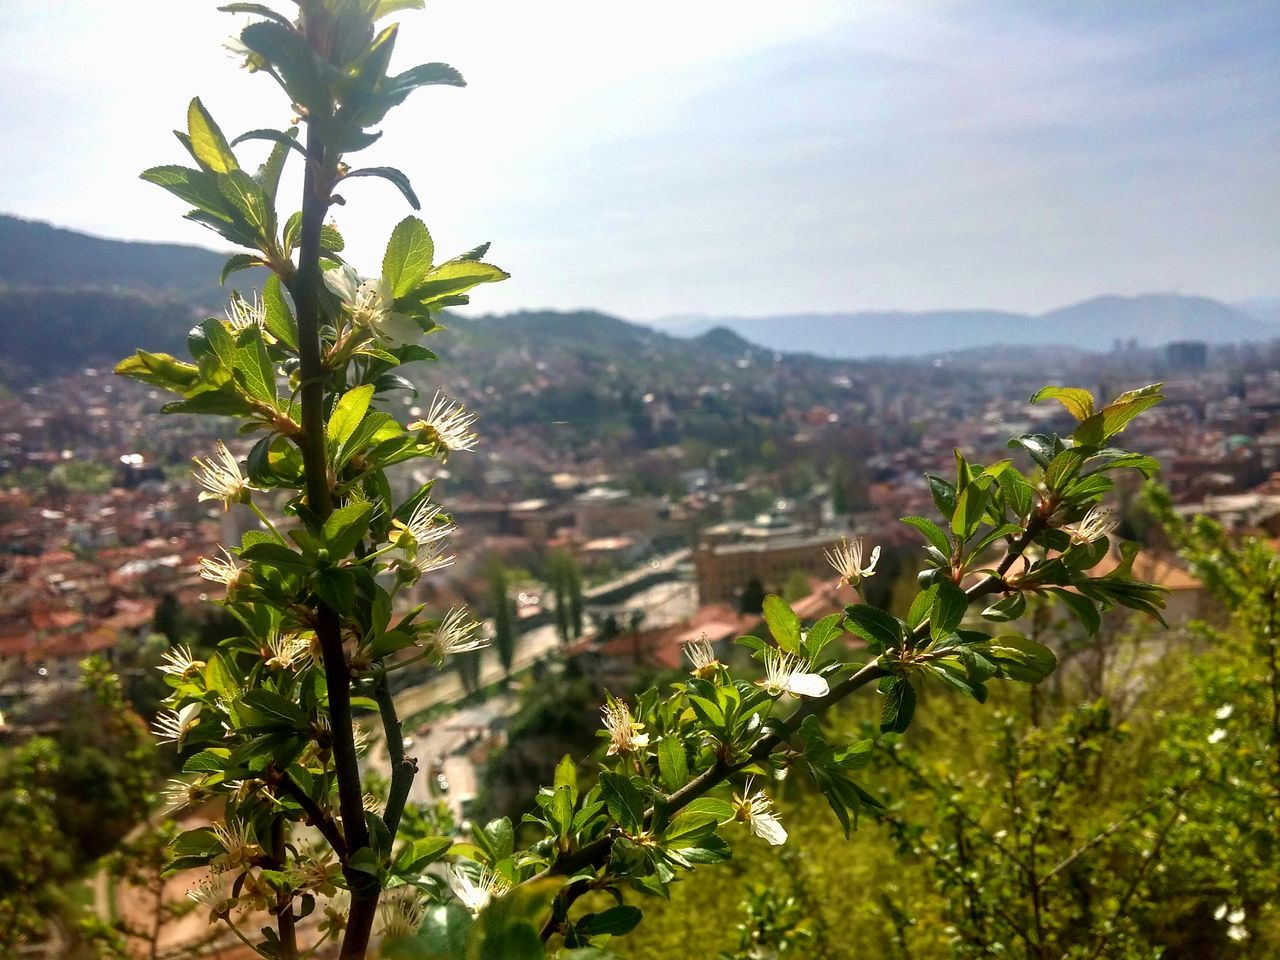 Showcase April City Cityscape Spring Sarajevo Plant Growing Nature OverviewPoint Focus Beautiful Warm Sunny Hot